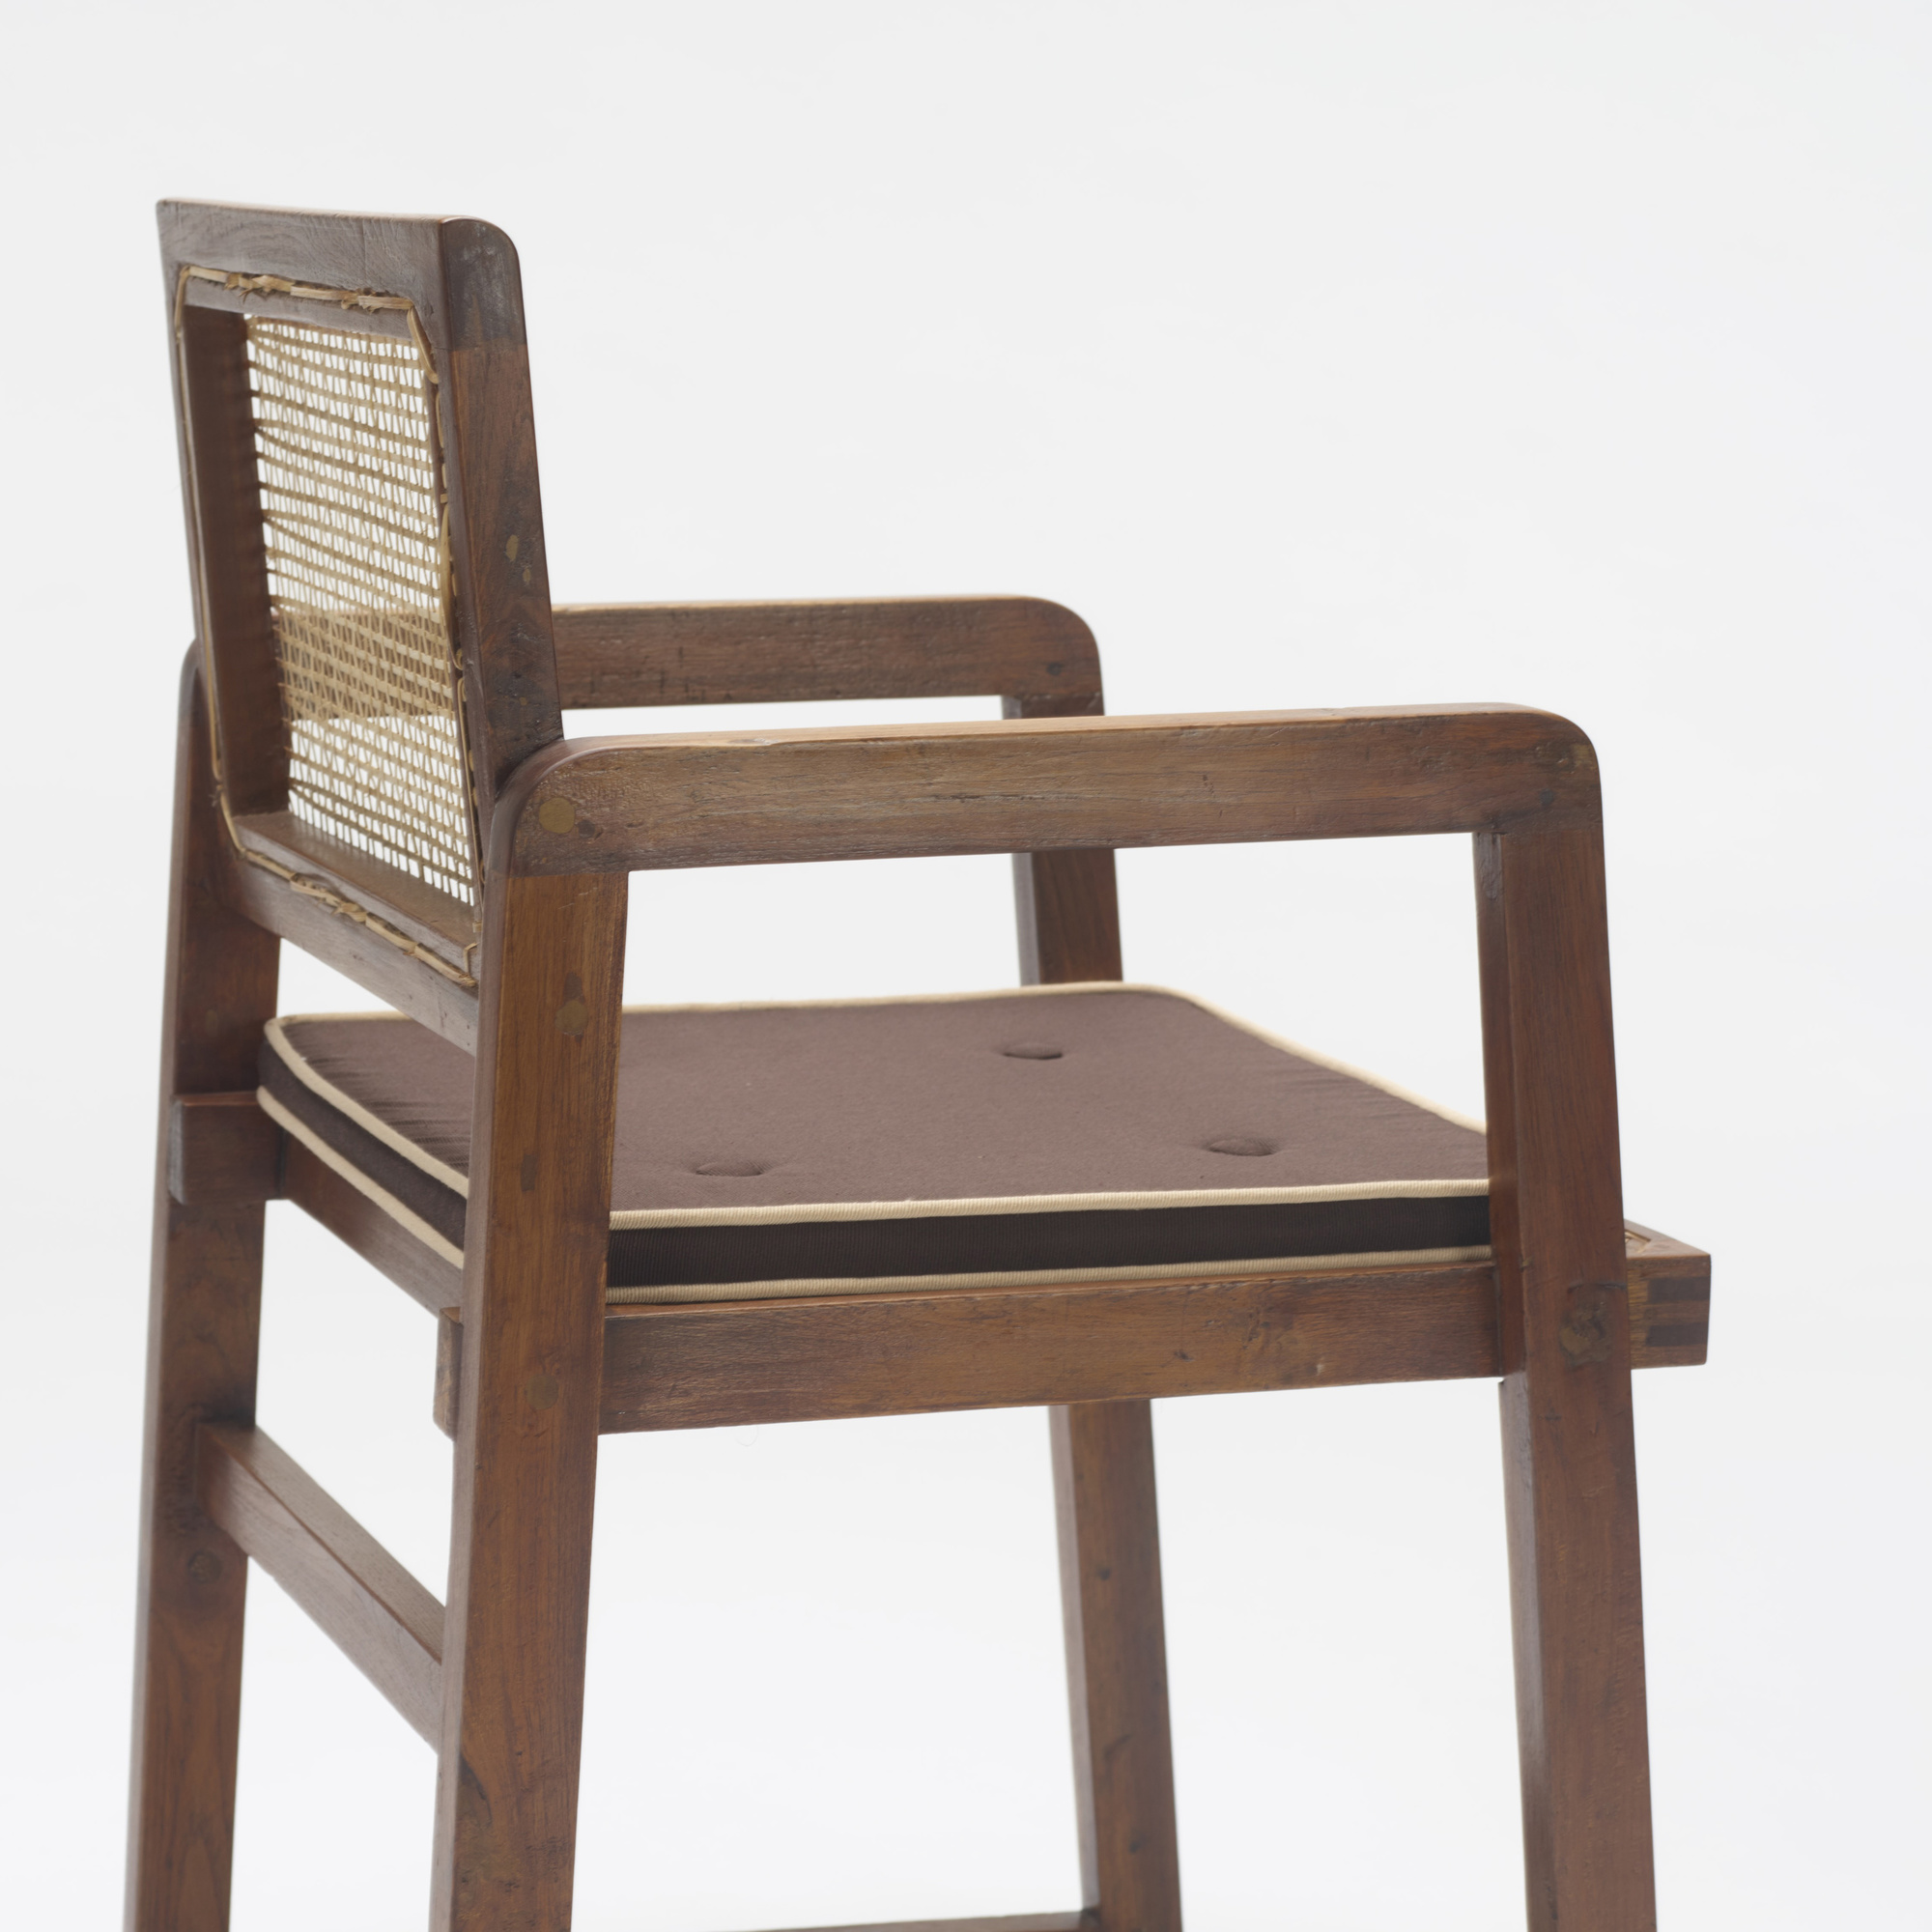 123: Pierre Jeanneret / armchair from Chandigarh (3 of 3)